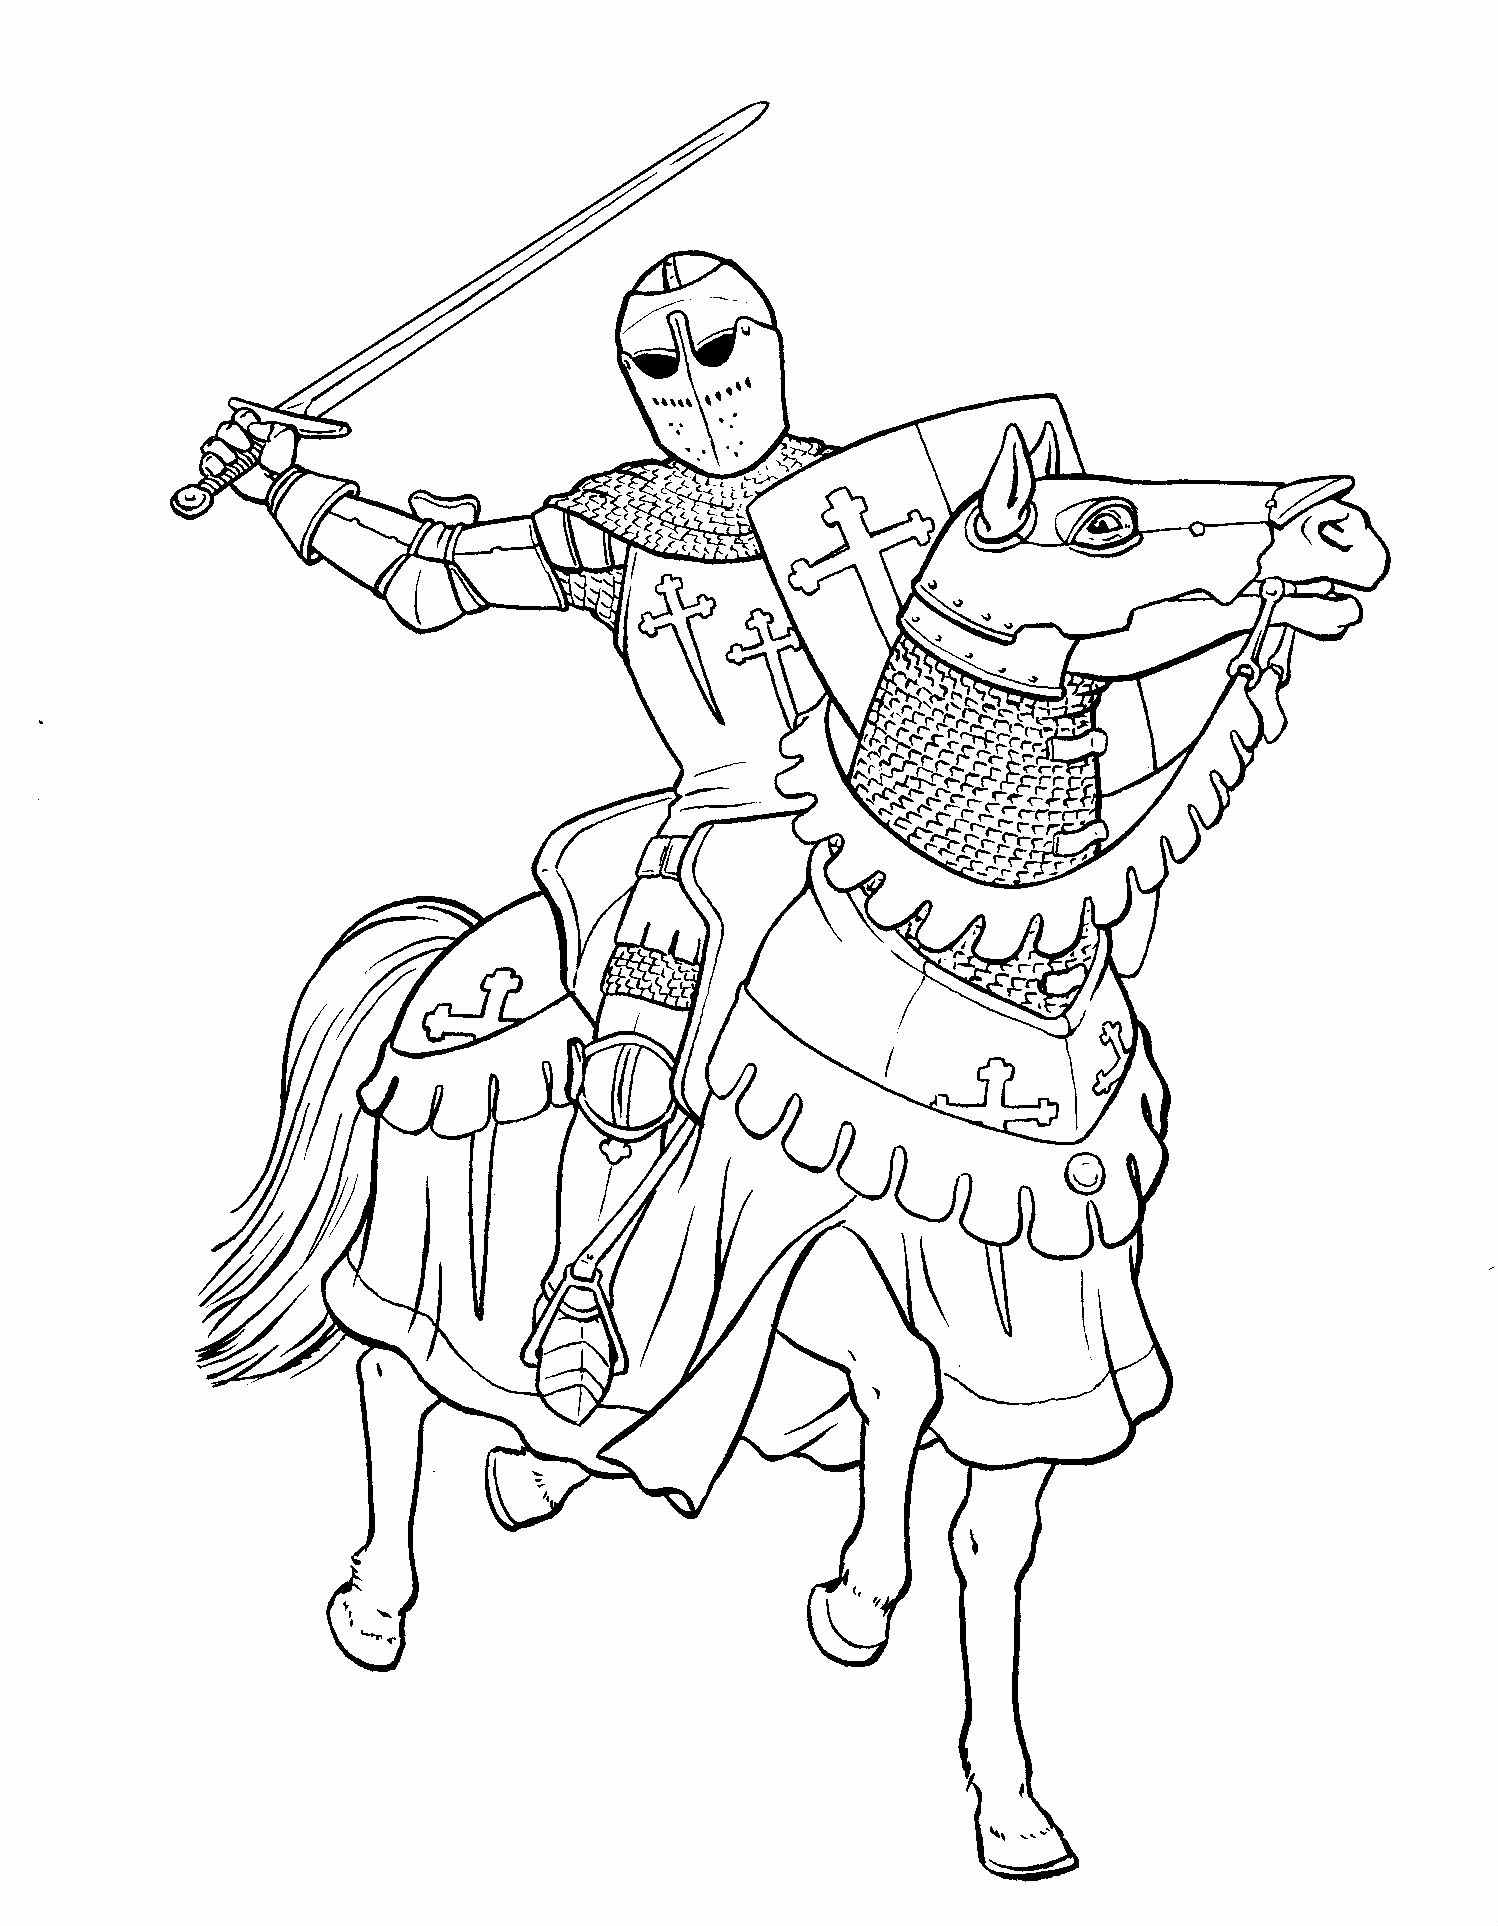 cid coloring pages - photo#23